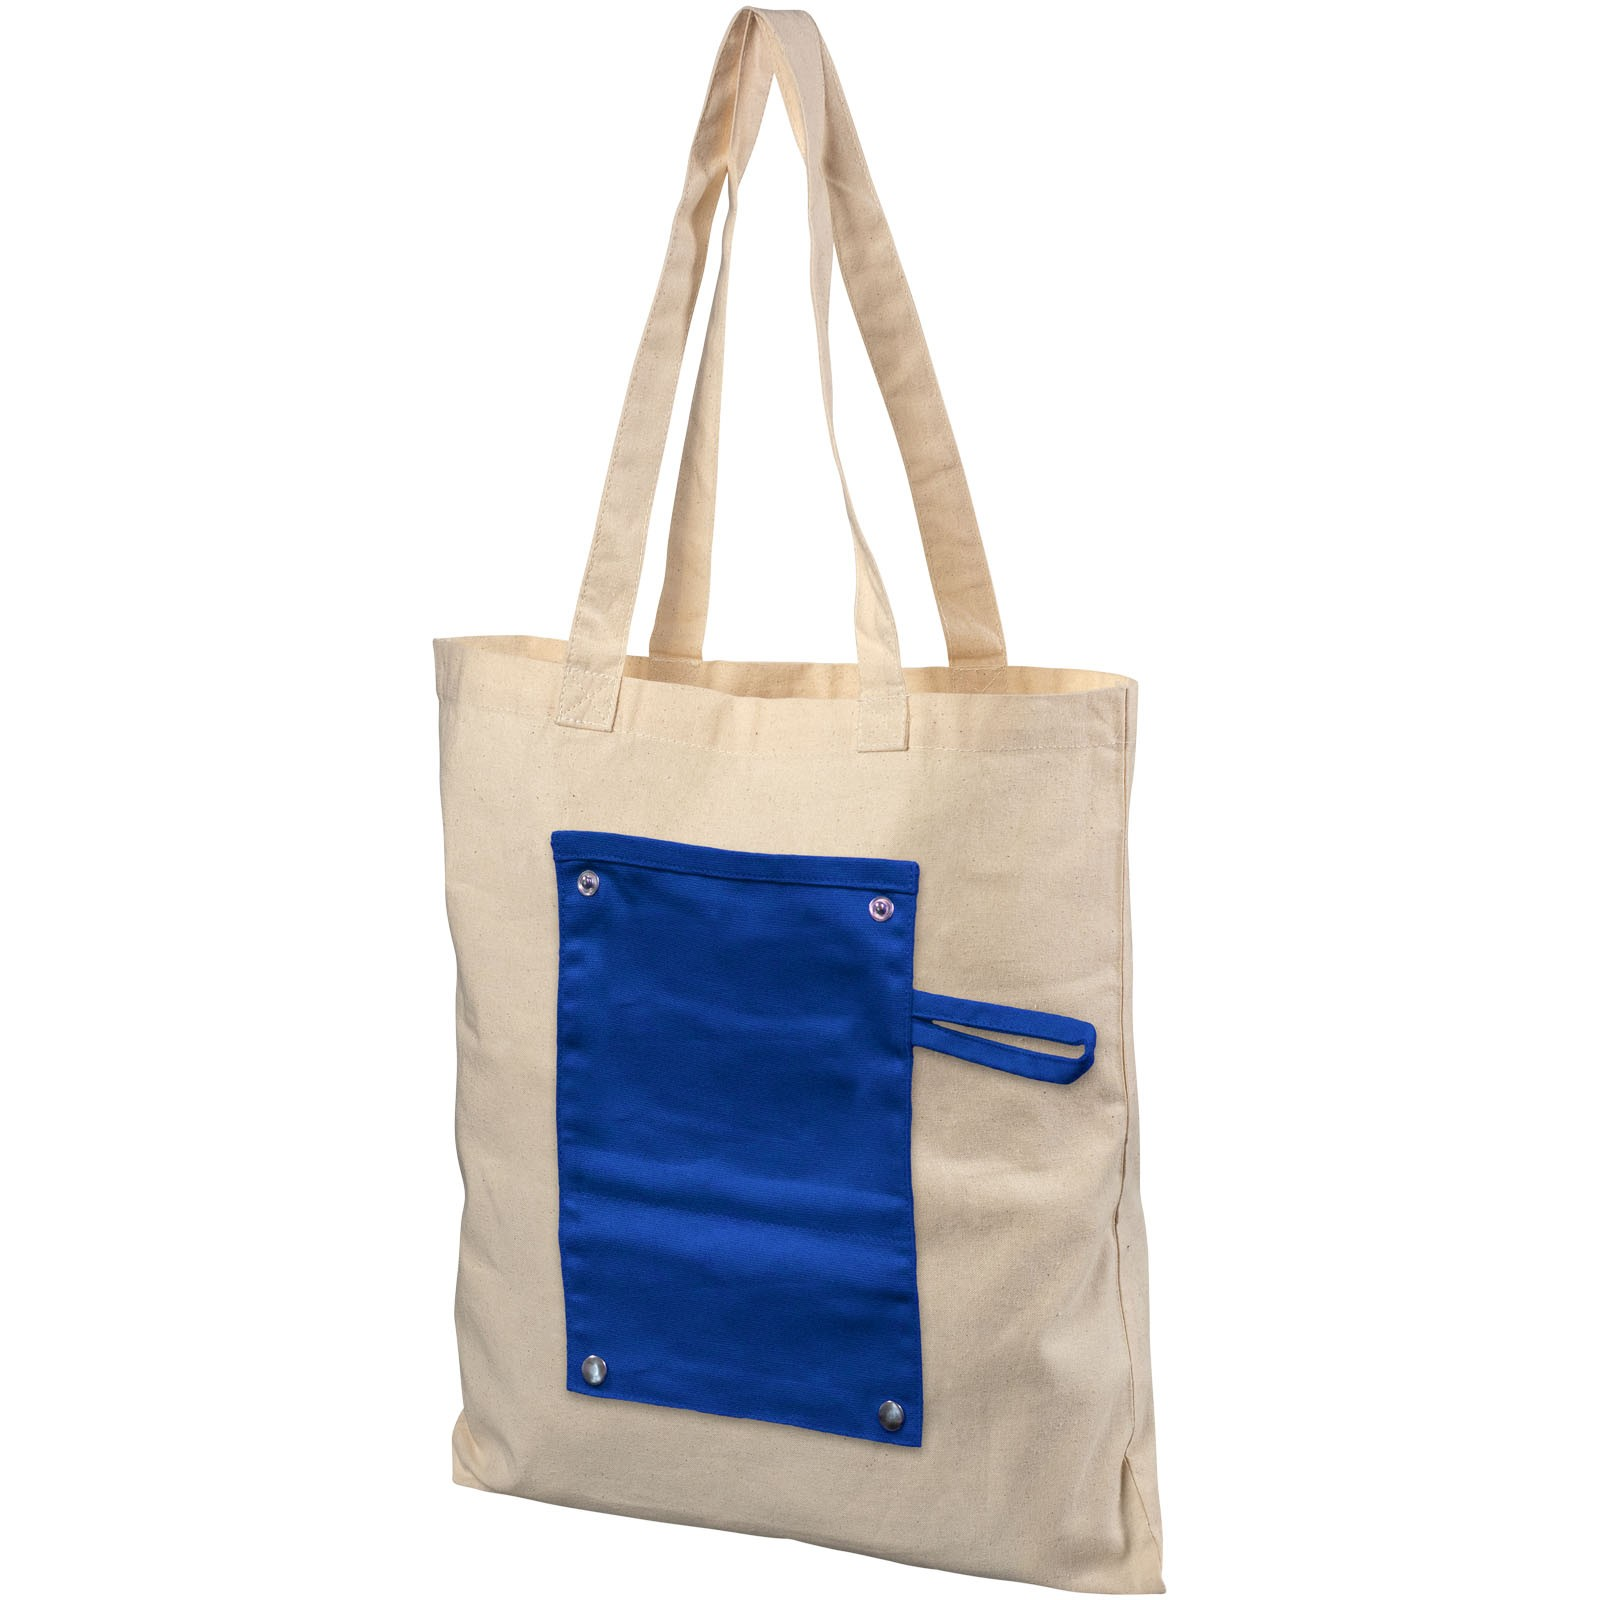 Snap 180 g/m² roll-up buttoned cotton tote bag - Process Blue